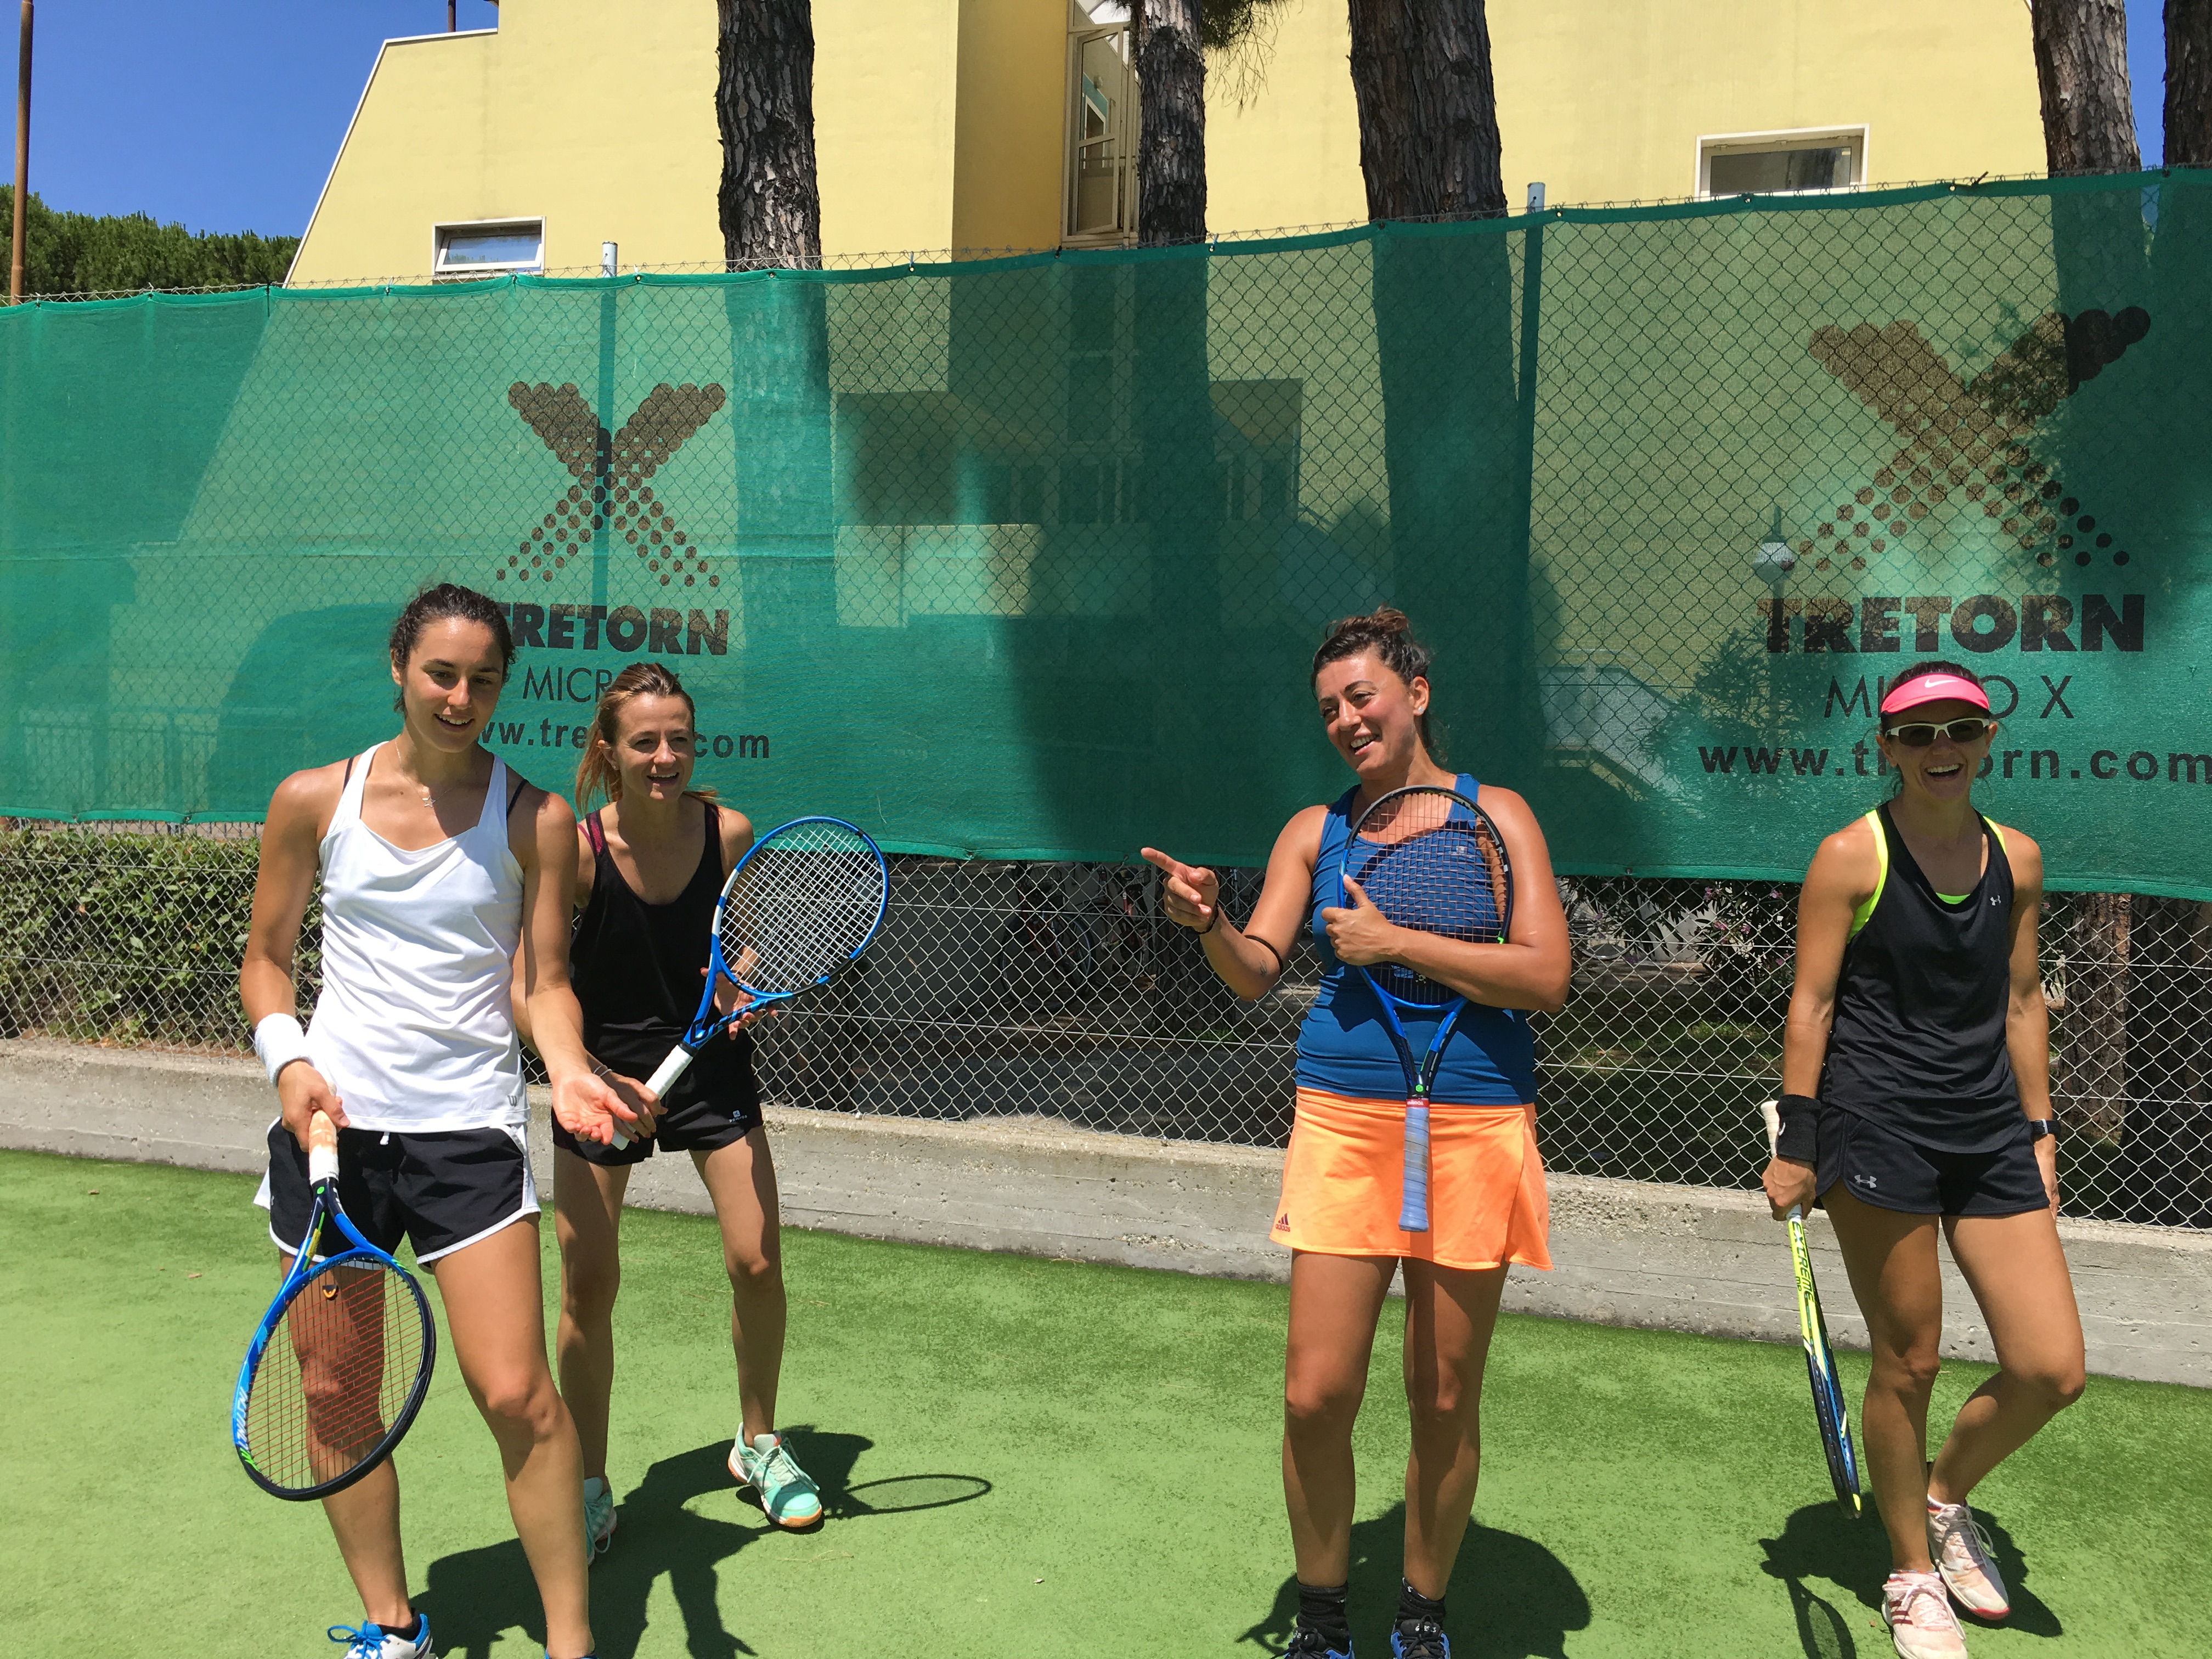 MARINA ROMEA STAGE WEEKEND DI TENNIS INTENSIVO 27/28